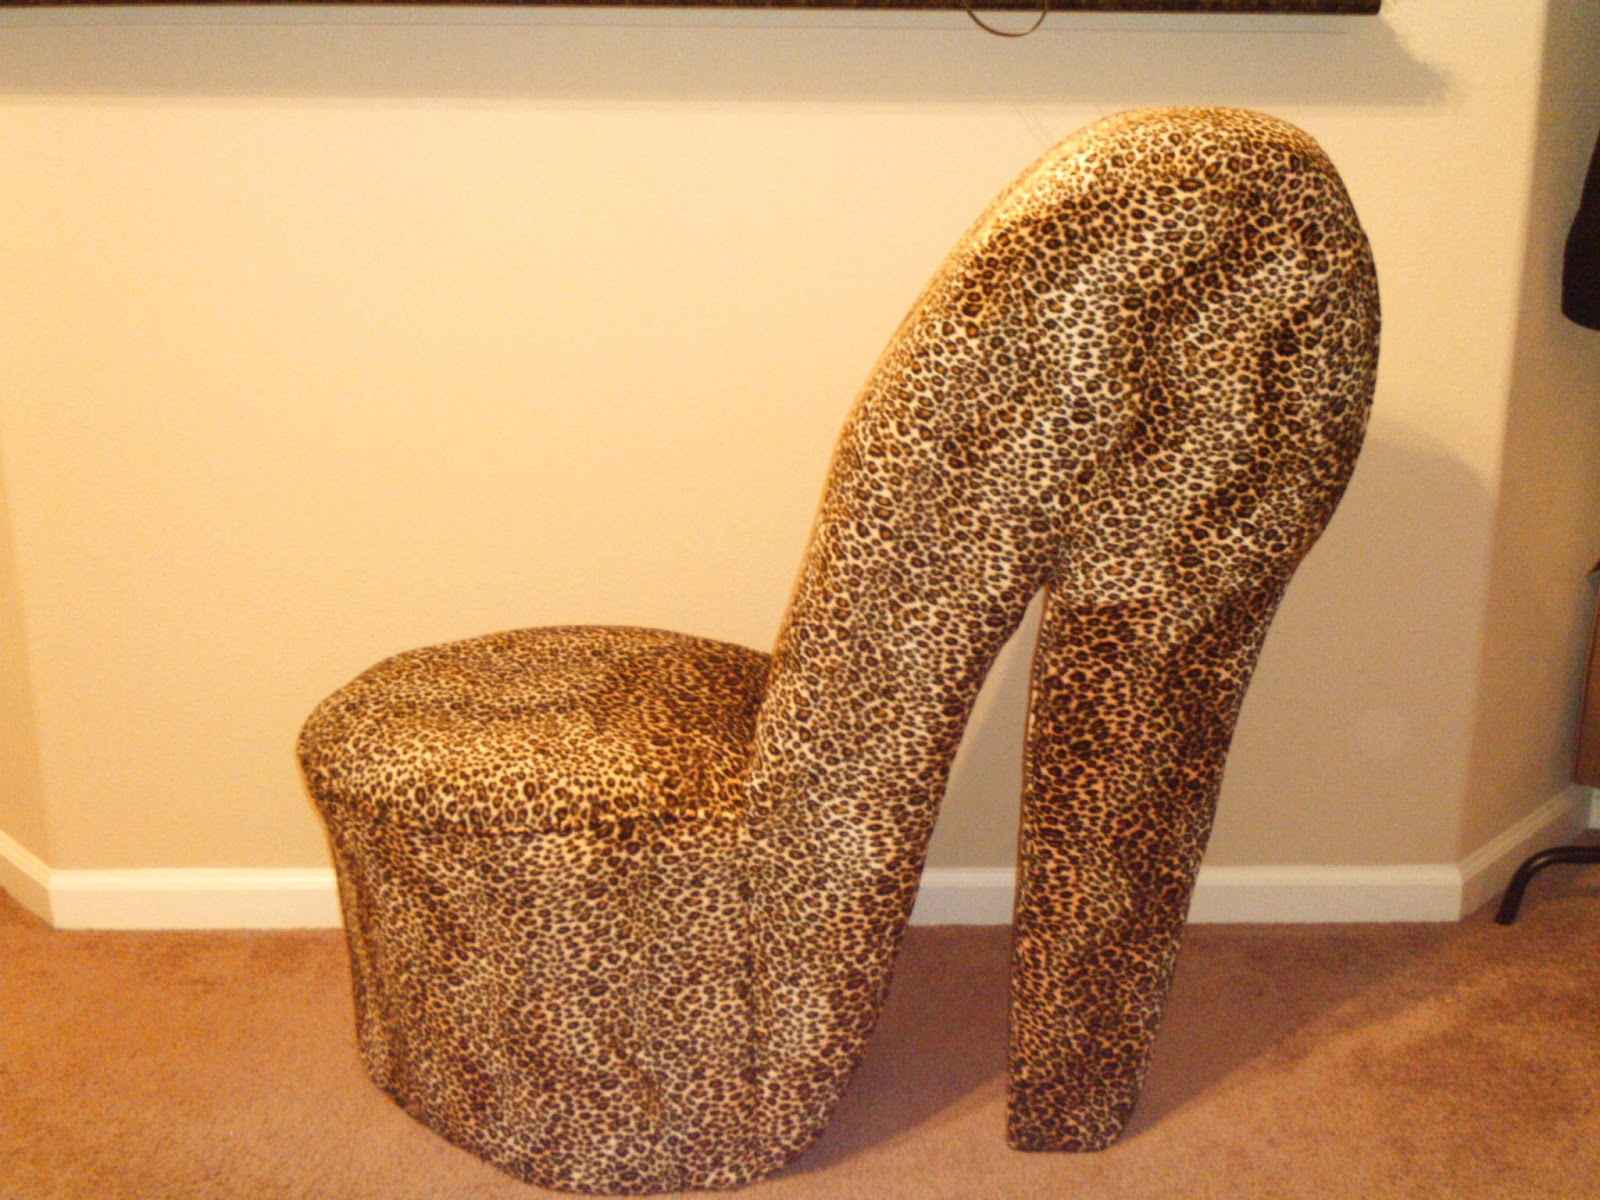 Leopard High Heel Shoe Chair Second Hand Bows And Haul Ootd